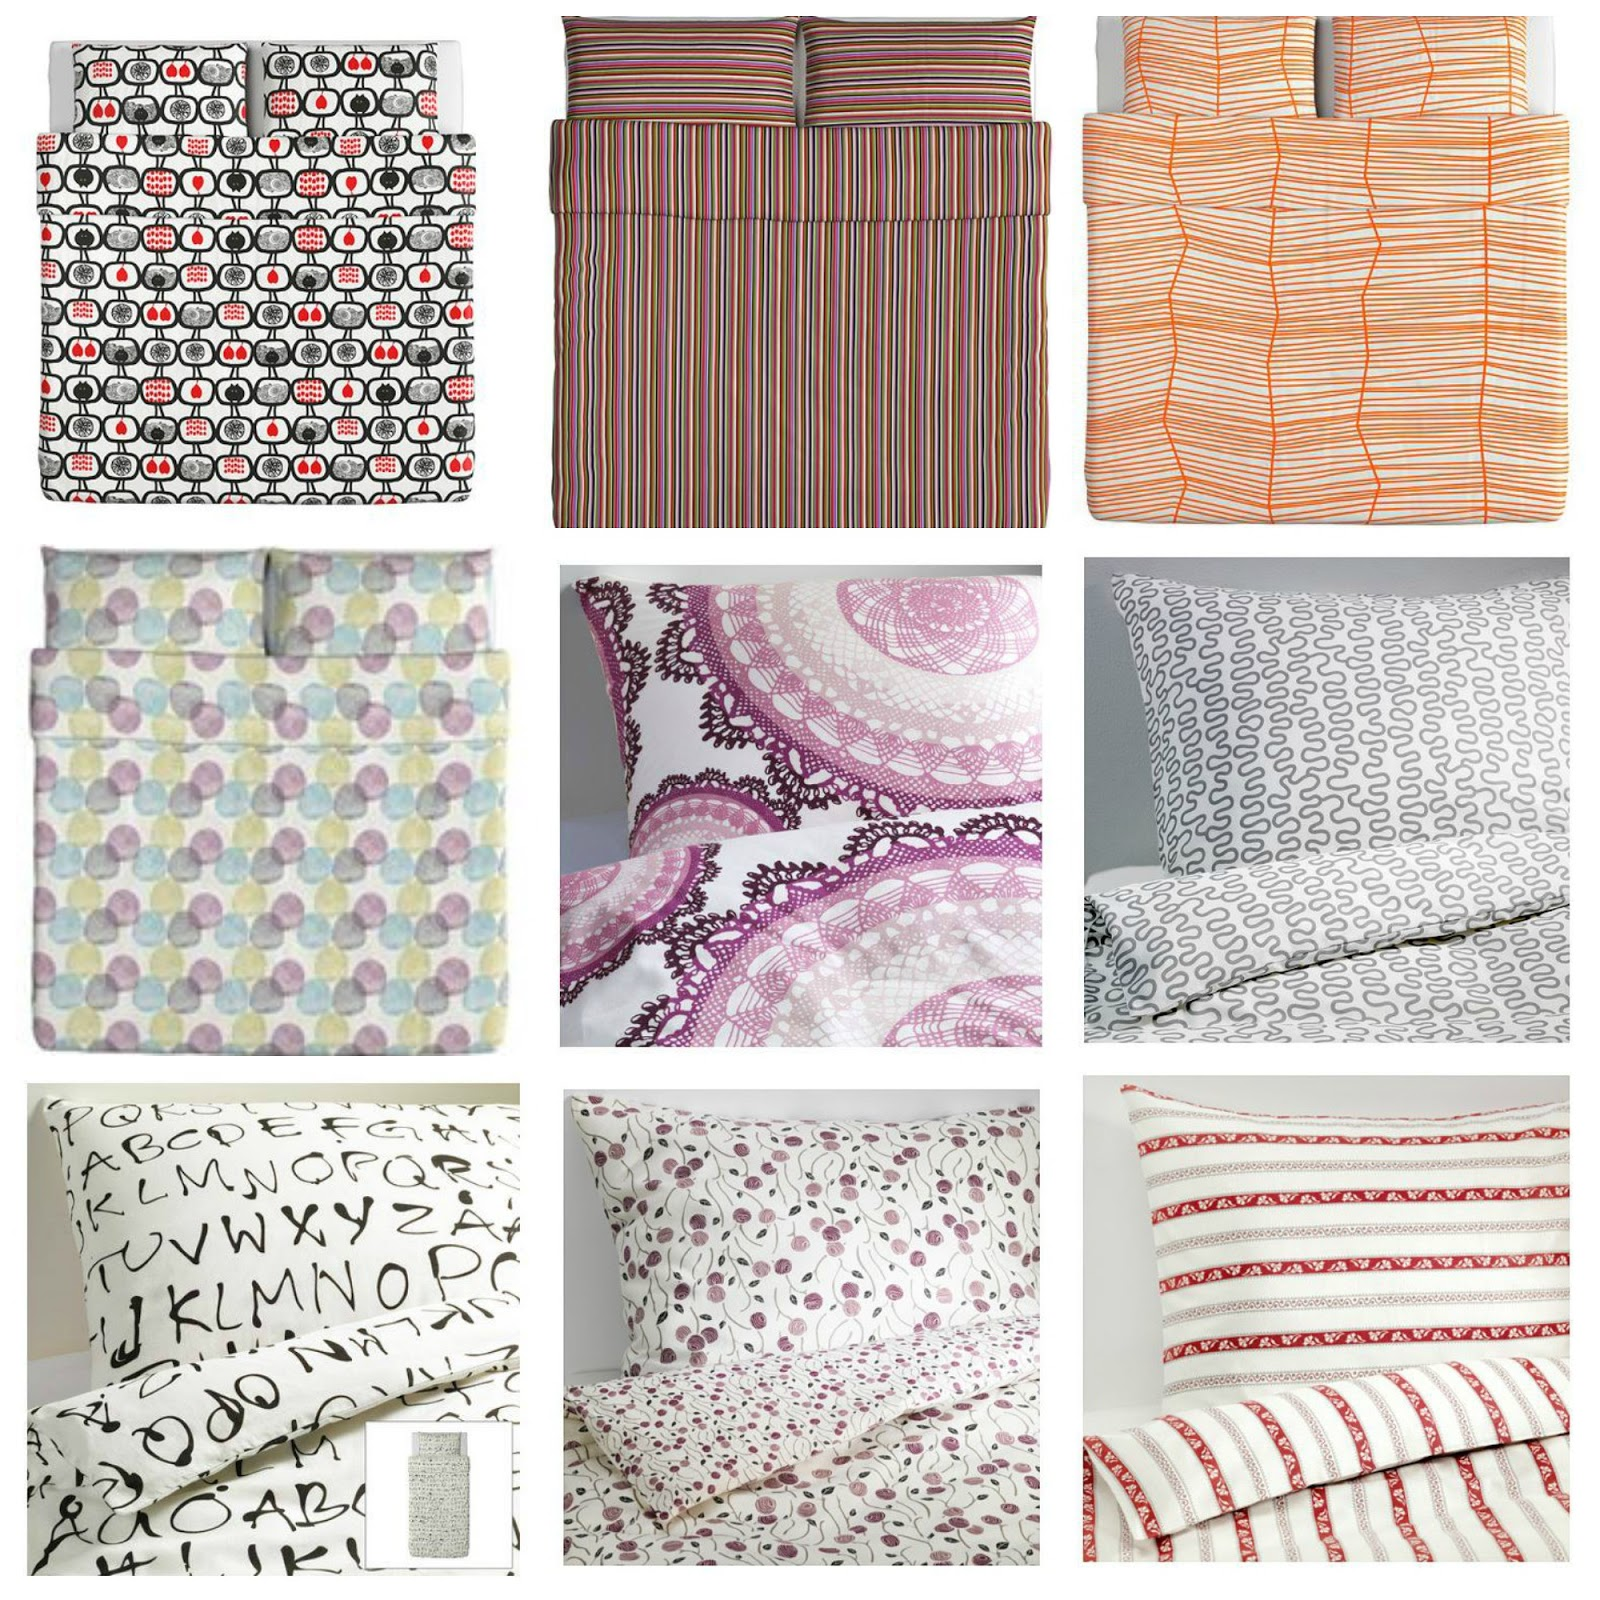 Bed Sheets For Your Quilts